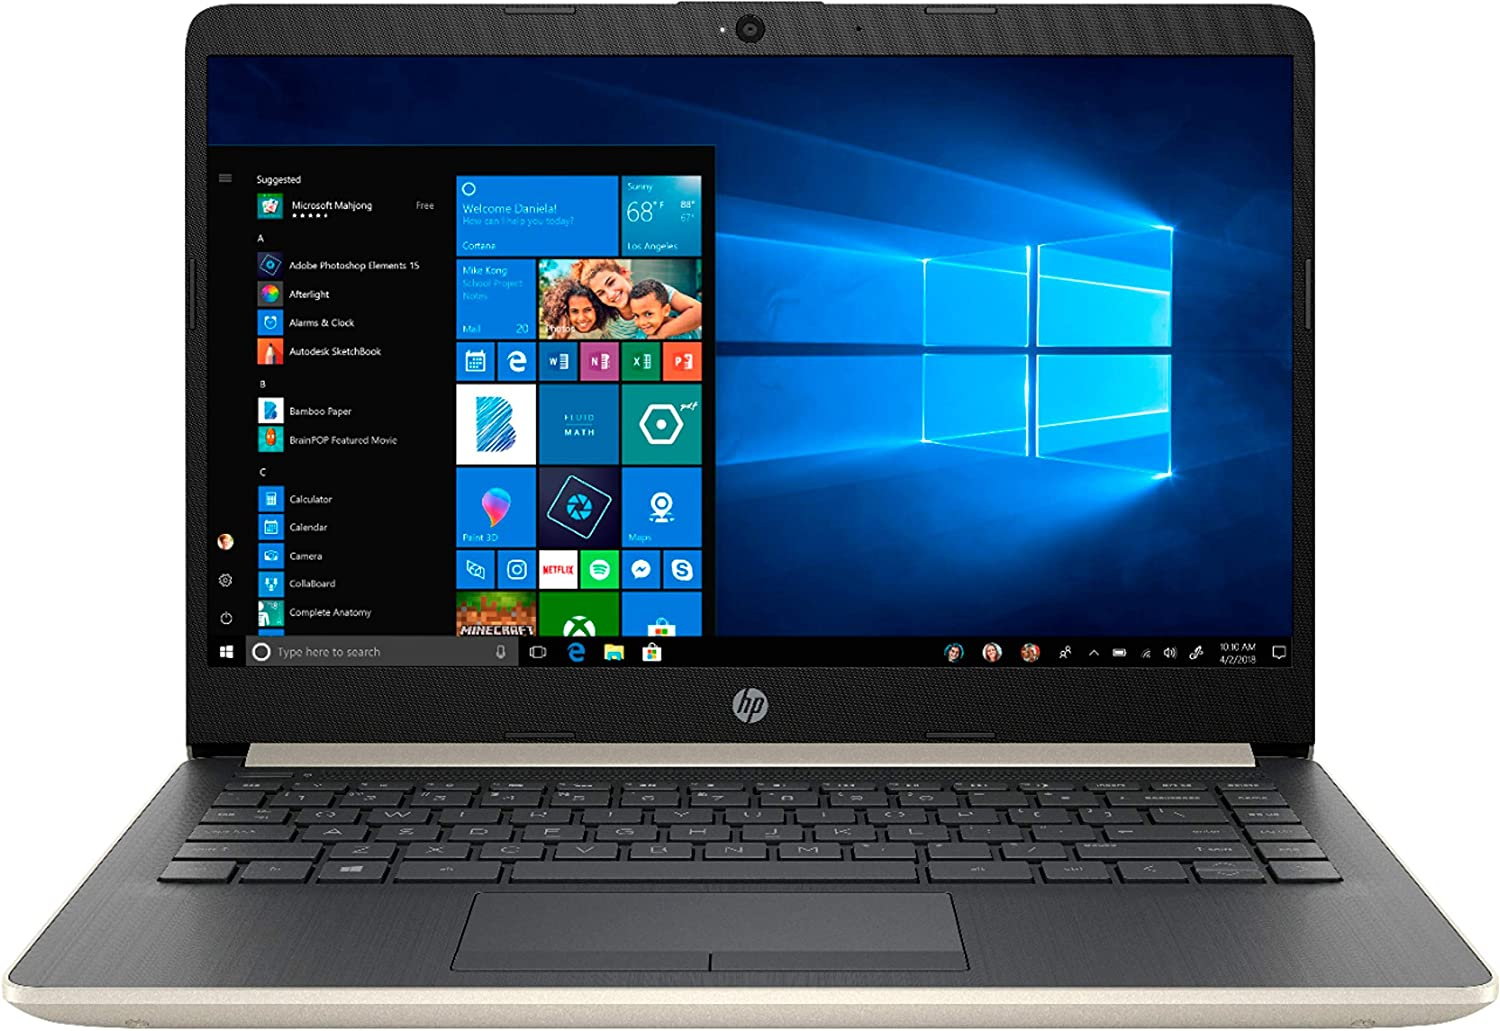 2020 Newest HP 14 inch BrightView WLED-Backlit Laptop, 10th Gen Intel Core i5-1035G1 1.0 GHz up to 3.6GHz, 8GB RAM, 256 GB SSD+16GB Optane, WiFi 802.11ac, Bluetooth, Windows 10 Home, Pale Gold